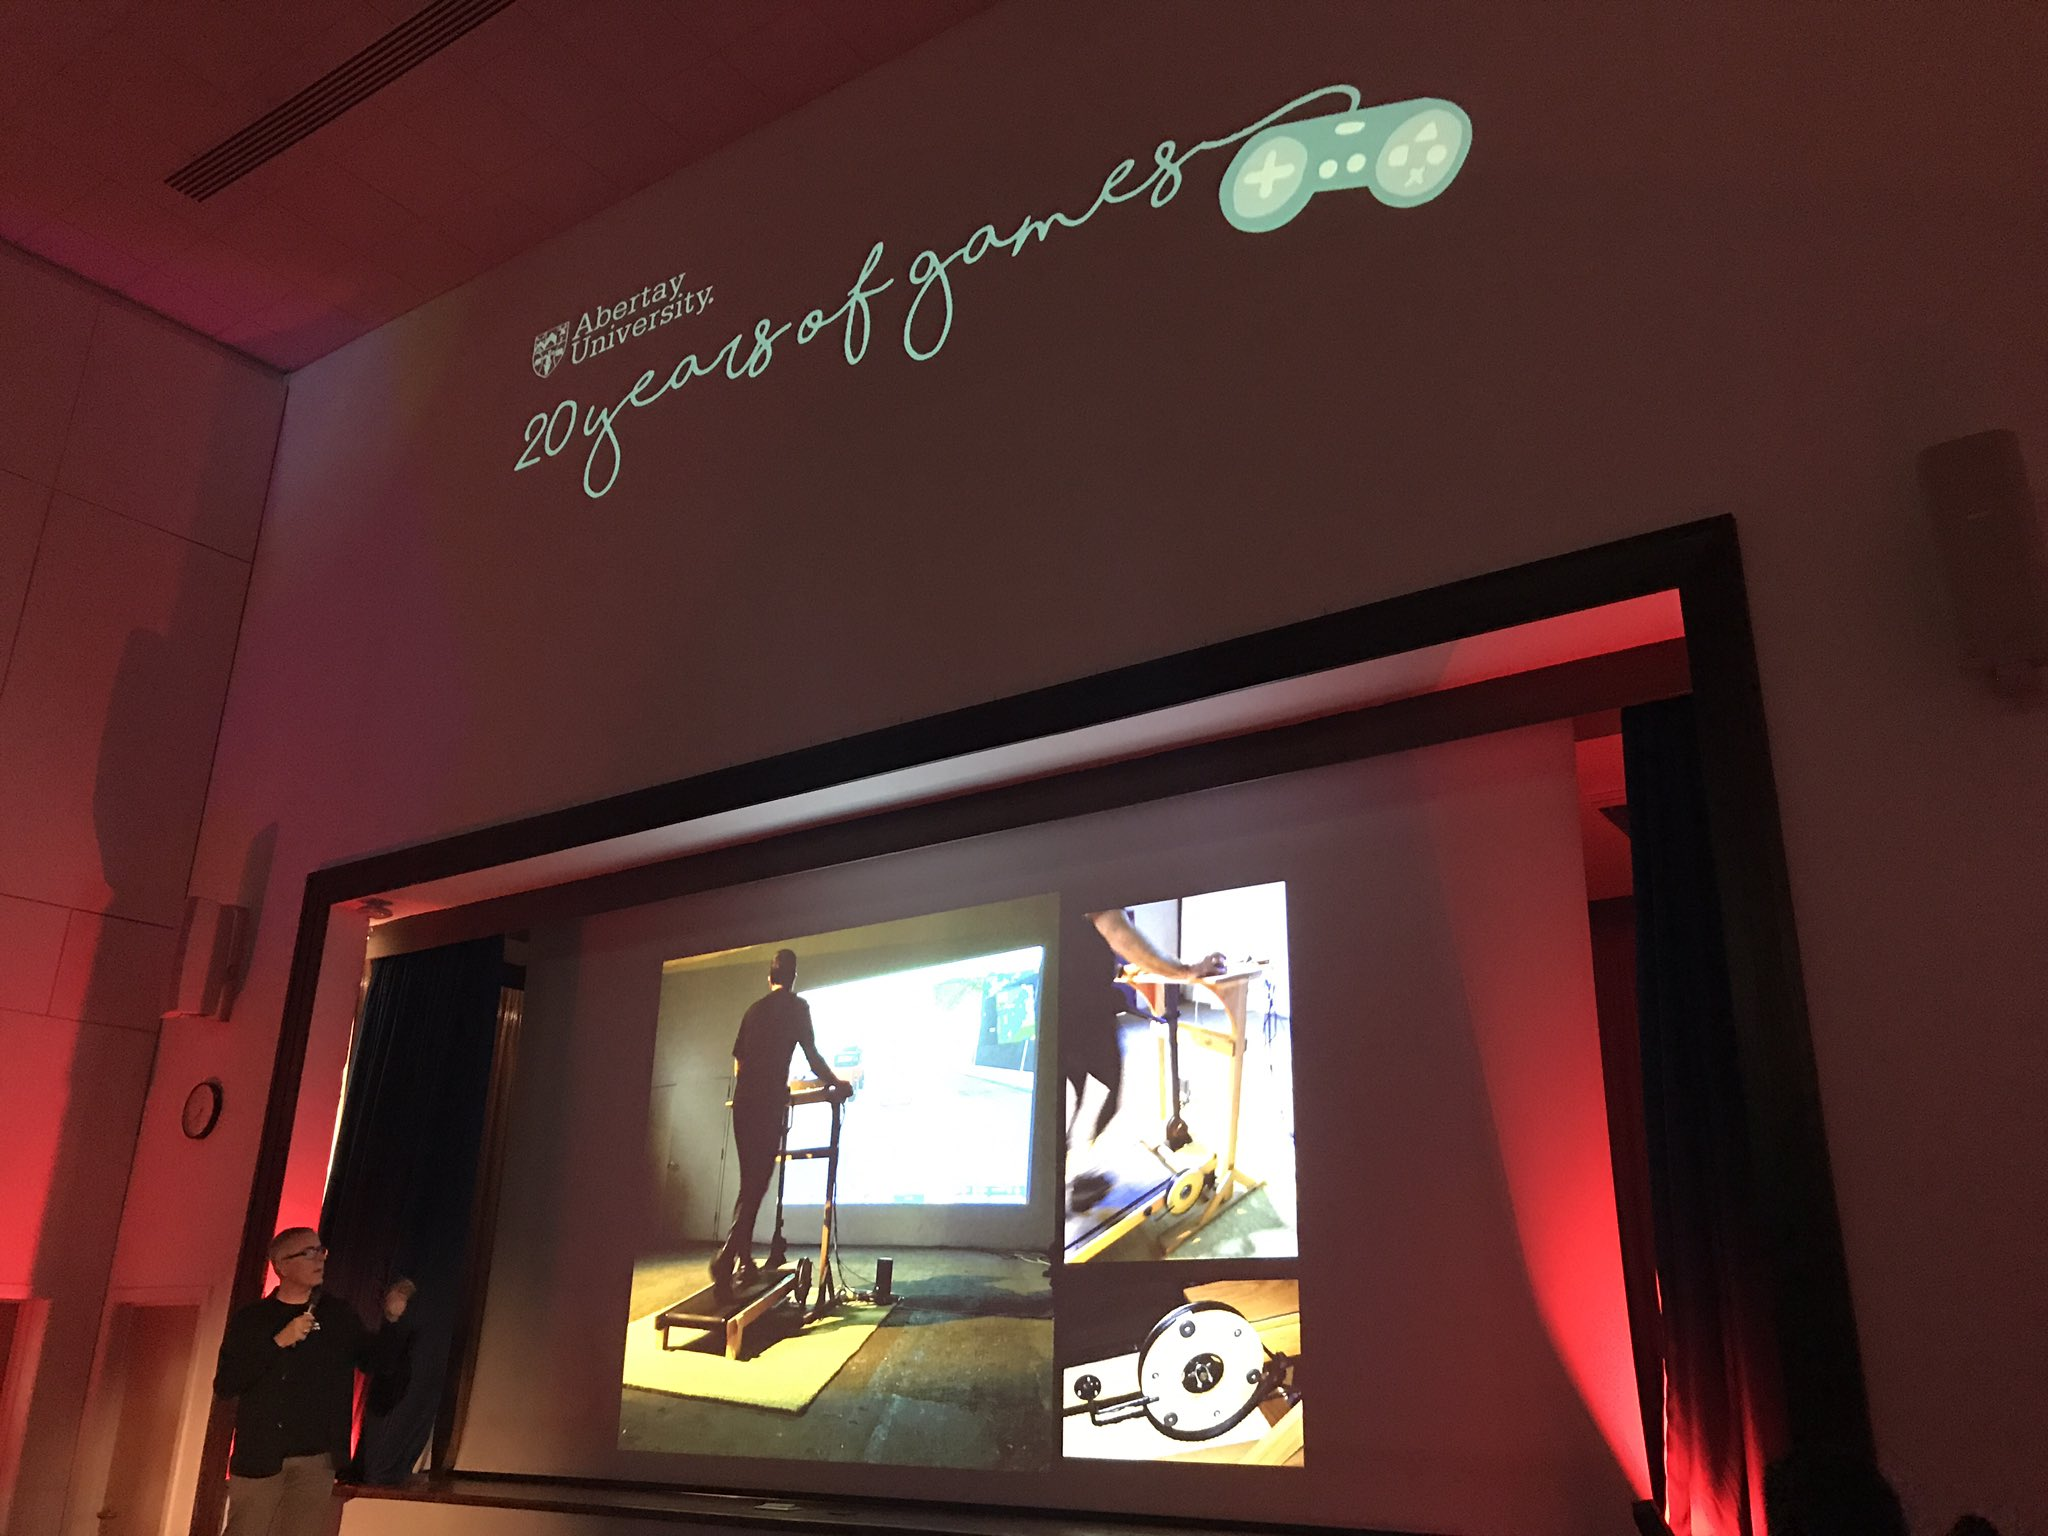 Bringing reality into gameplay - @josephdelappe at #GamesPK #AbertayGames20 https://t.co/OZqheBYyLe